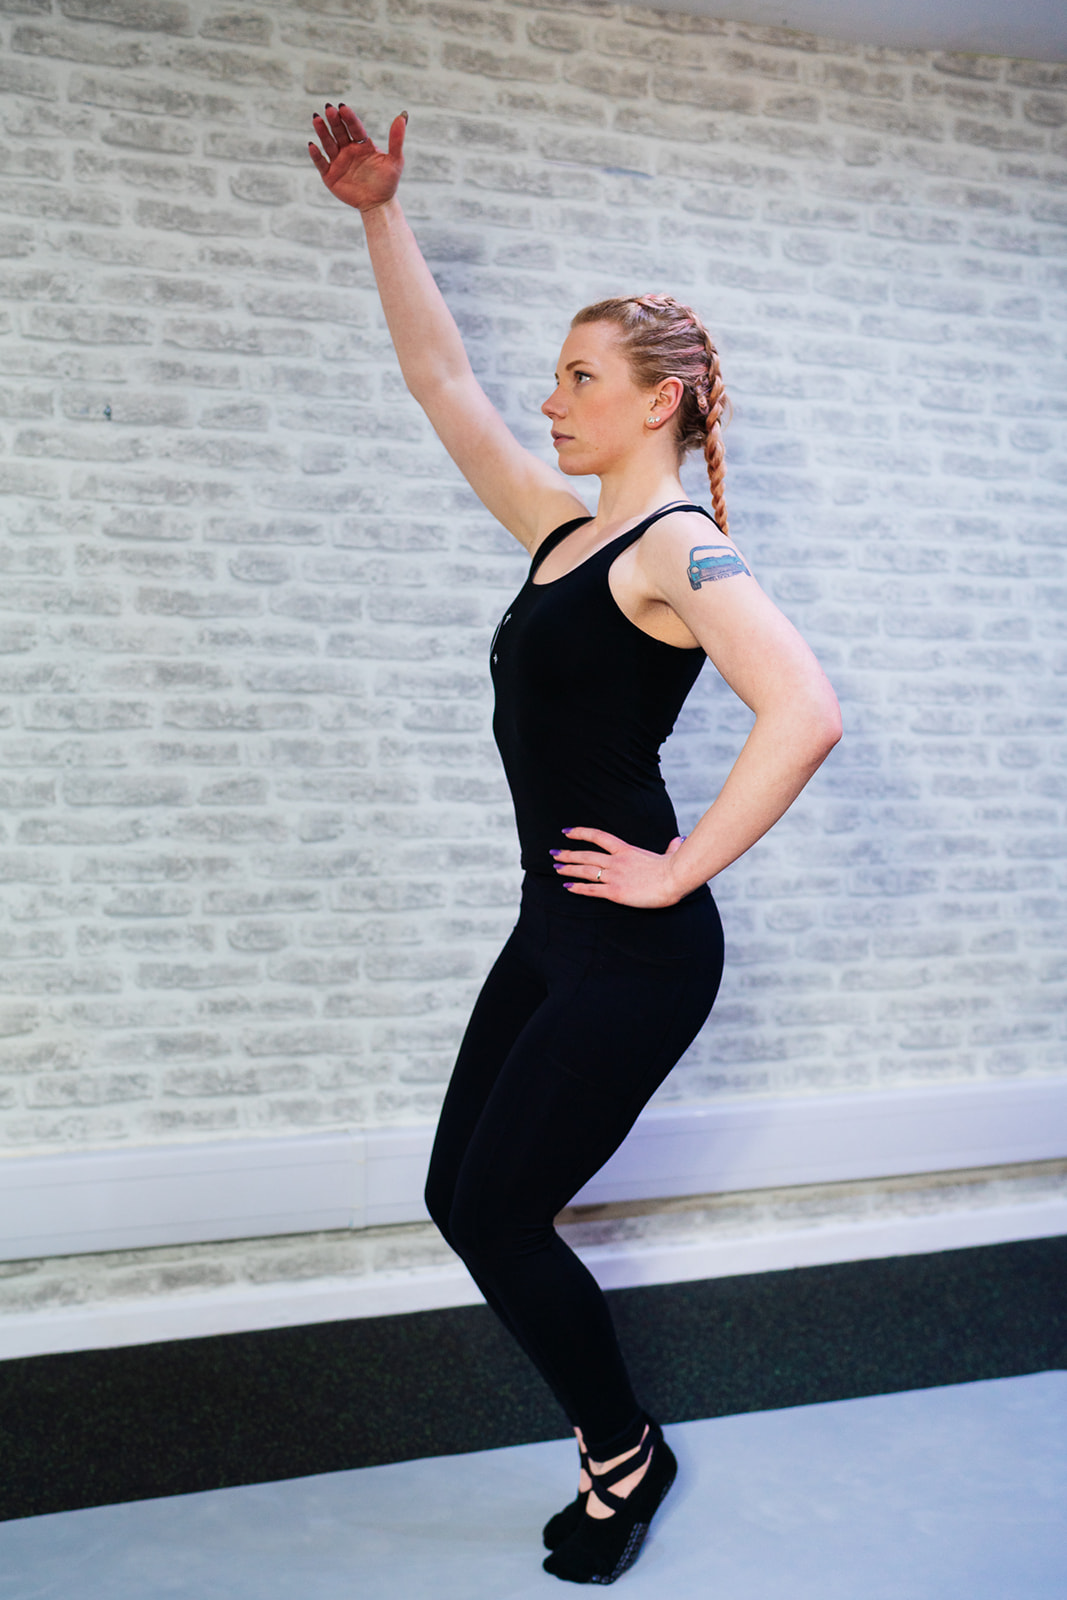 An introduction to Barre- Strengthen & burn! A workshop with Liv